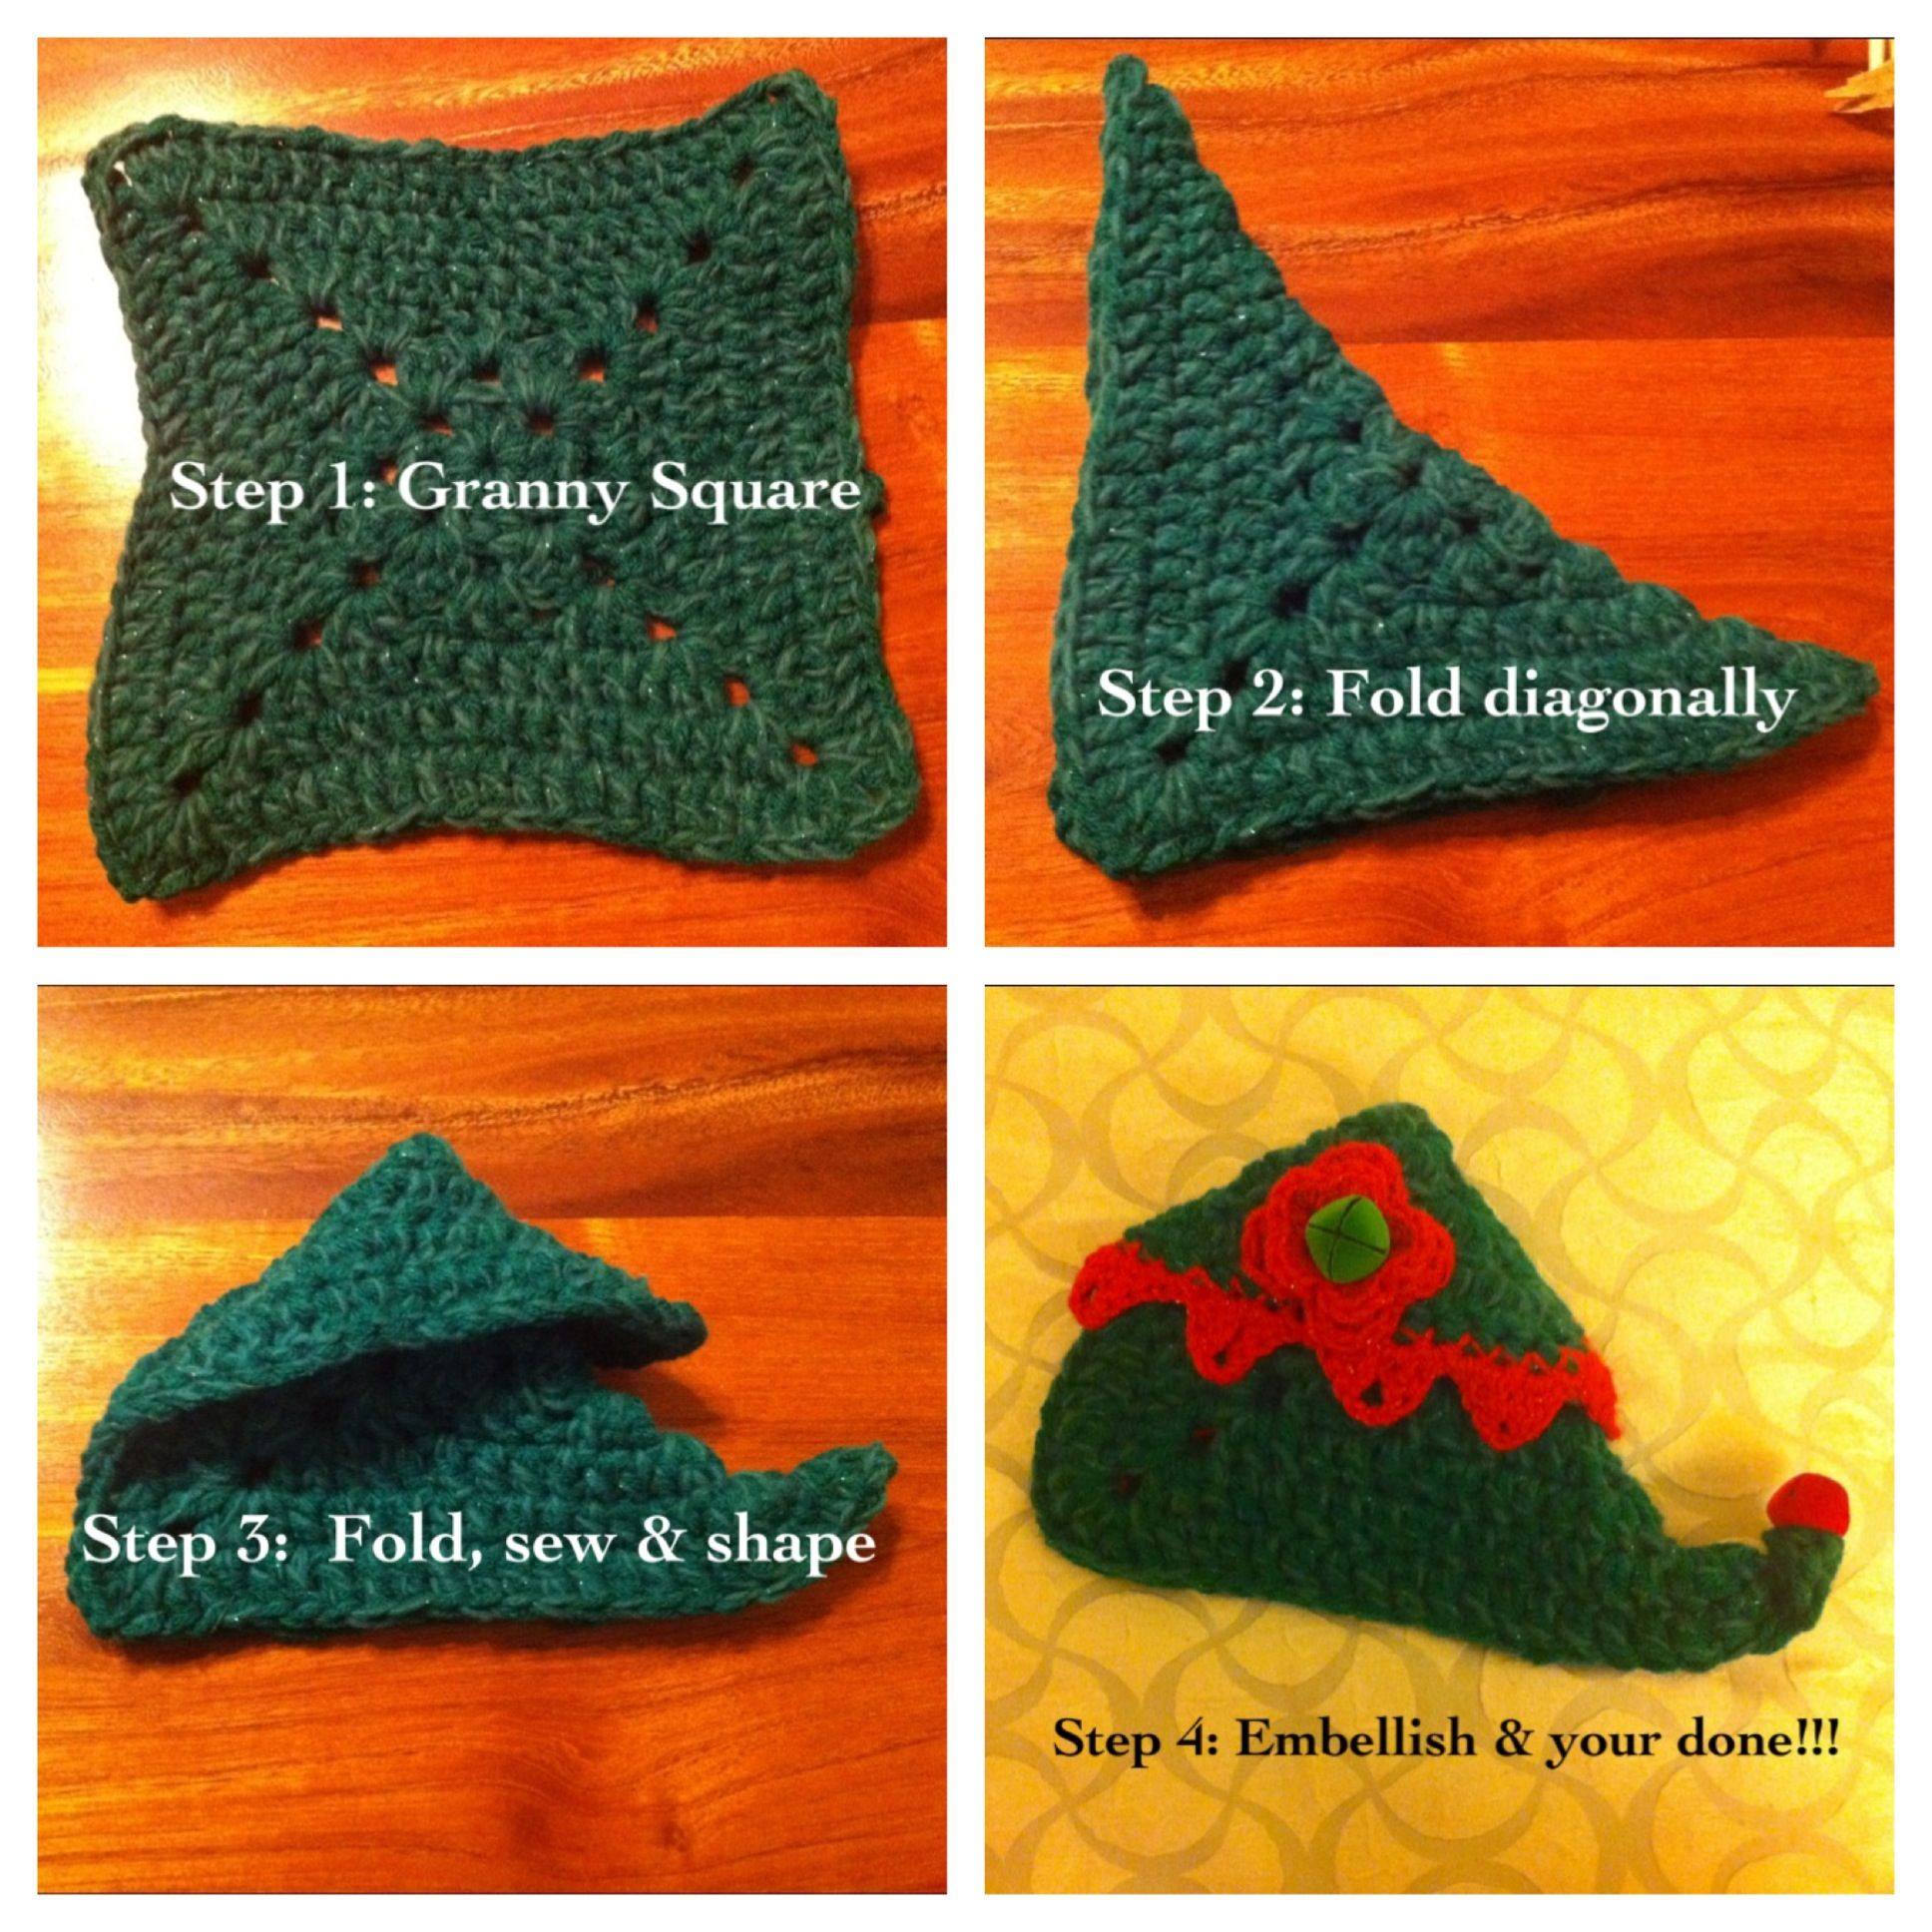 Knitting Pattern For Elf Slippers : DIY - Elf Slippers from a knit or crochet square! (By Cass ...